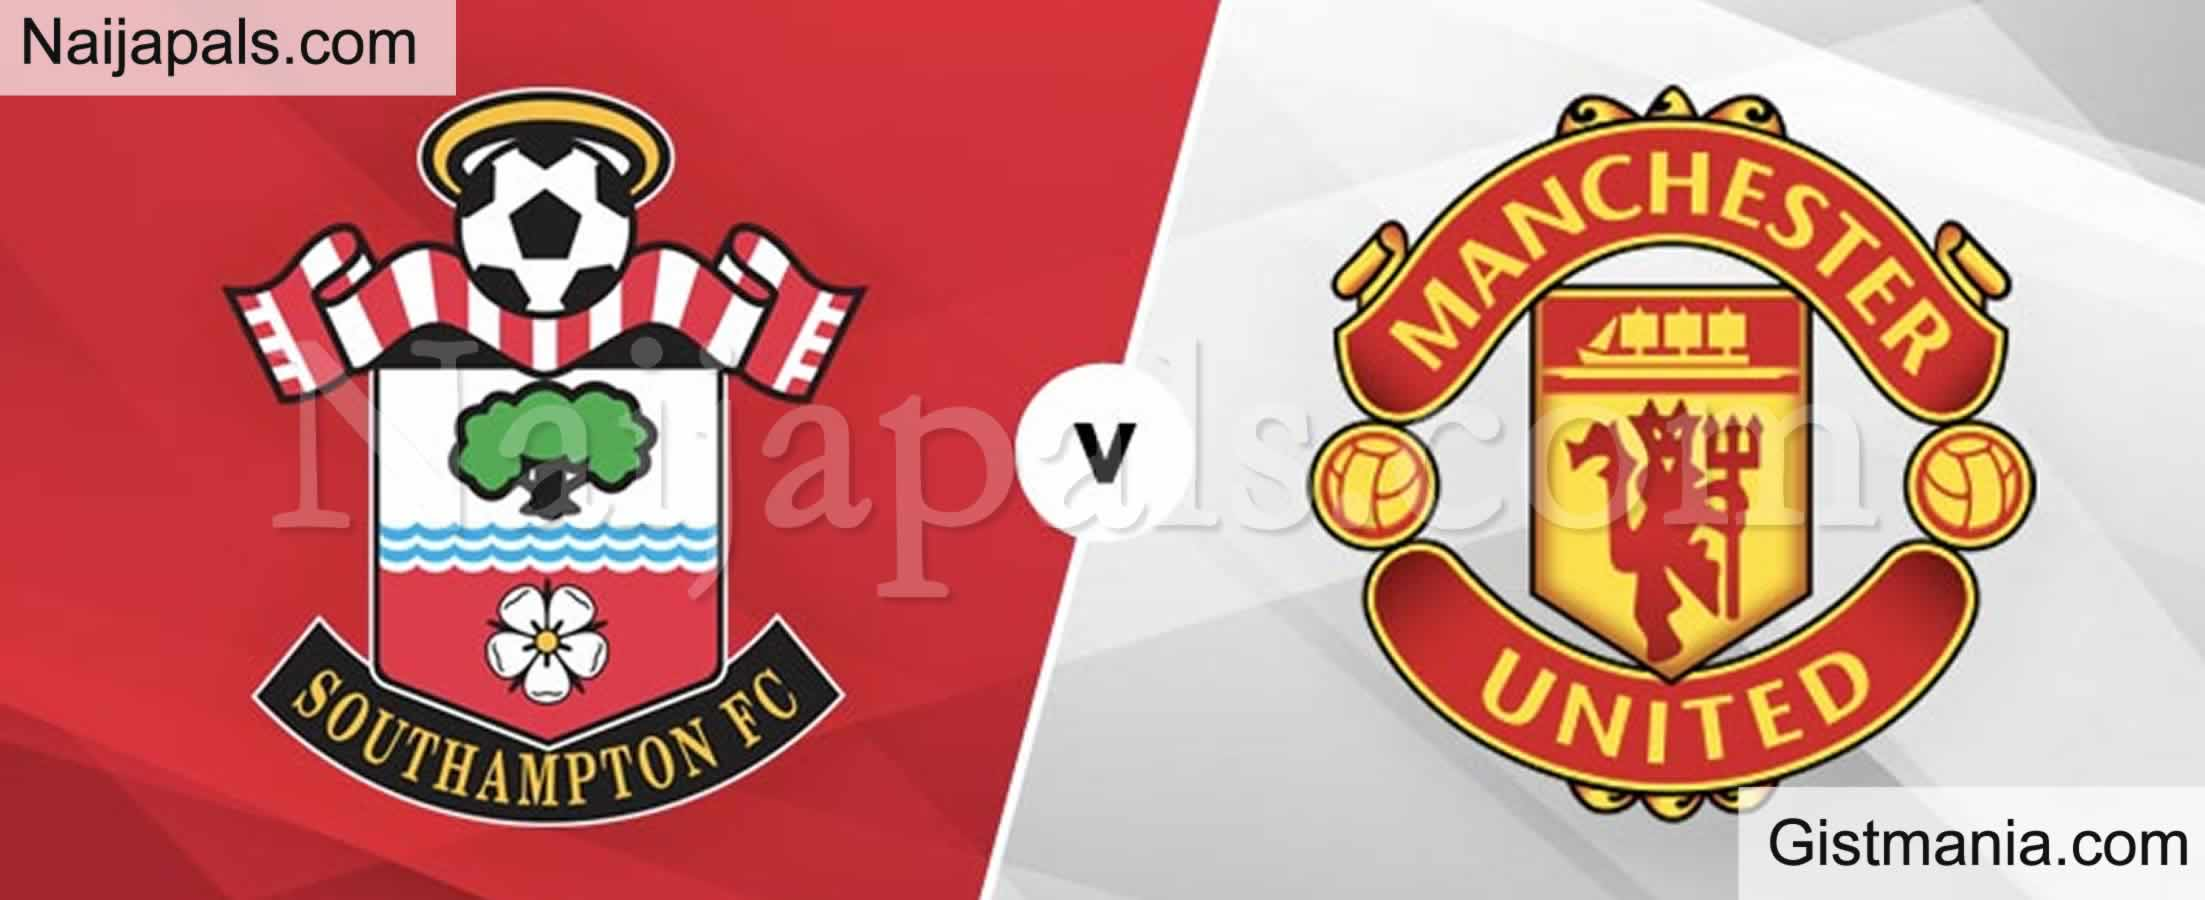 <img alt='.' class='lazyload' data-src='https://img.gistmania.com/emot/soccer.gif' /> <b>Southampton v Manchester Utd : English Premier League Match, Team News, Goal Scorers and Stats</b>